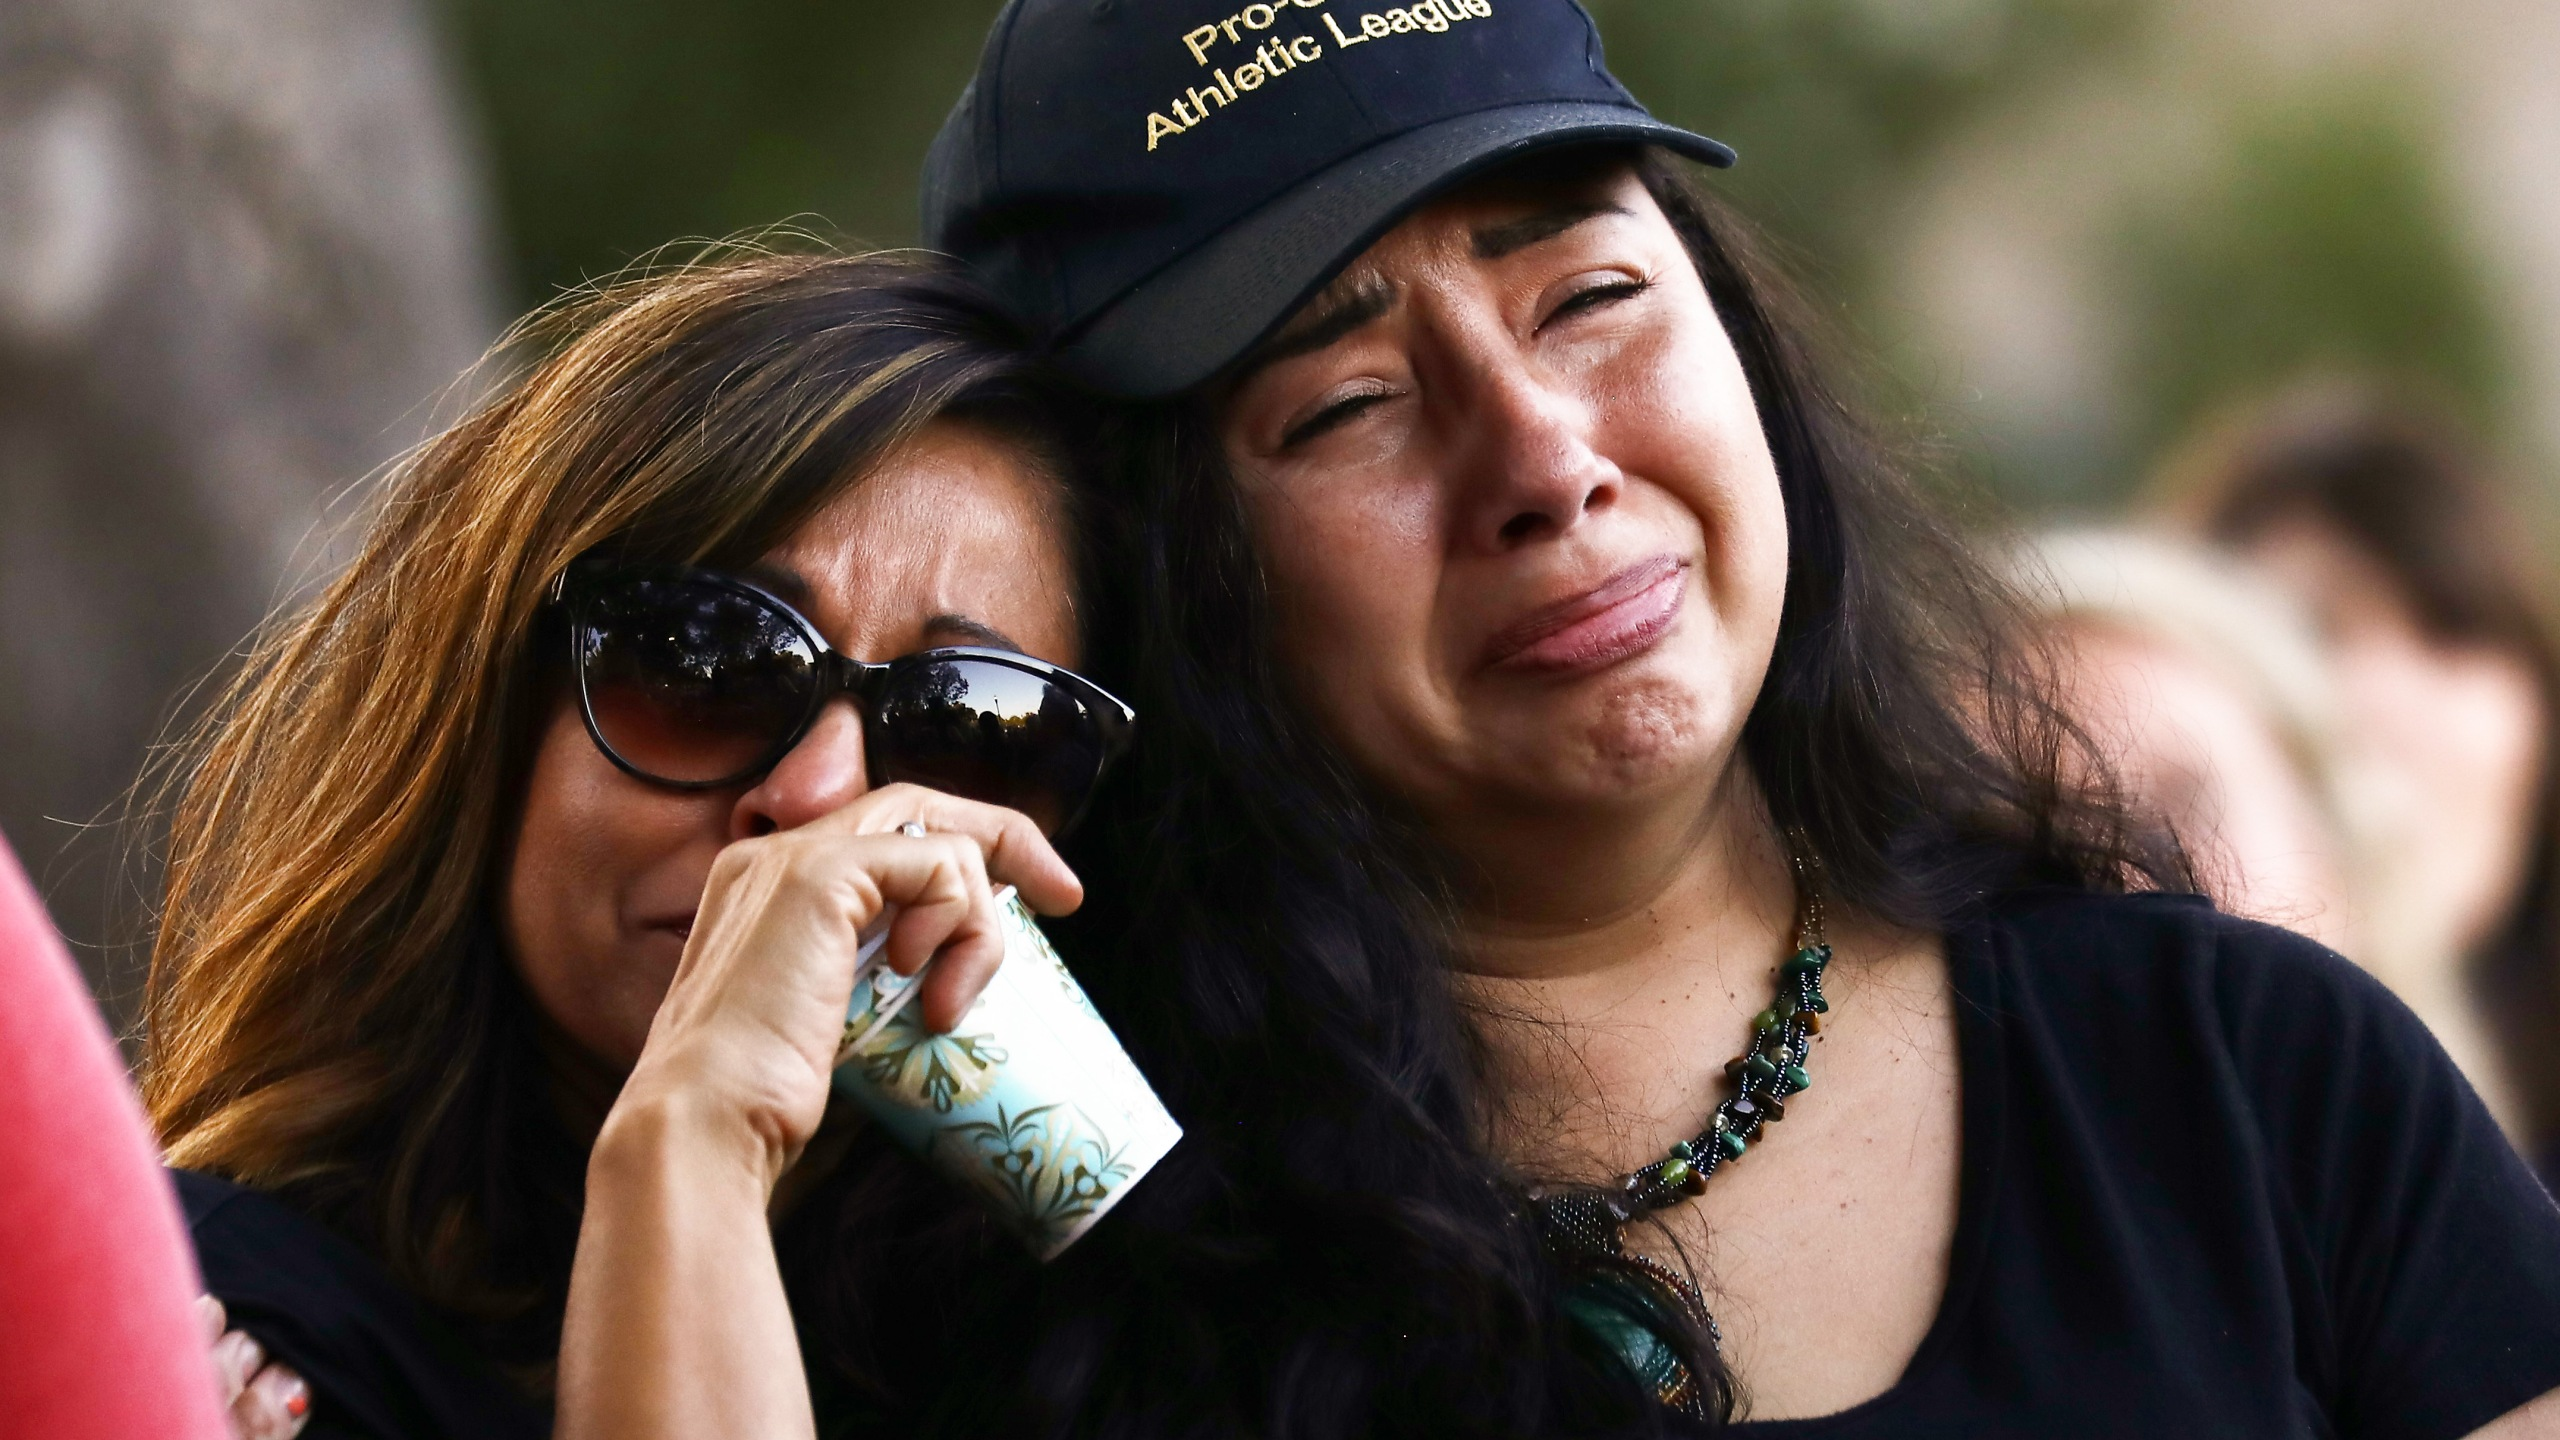 People embrace at a vigil for victims of the mass shooting at the Gilroy Garlic Festival on July 29, 2019 in Gilroy. (Credit: Mario Tama/Getty Images)